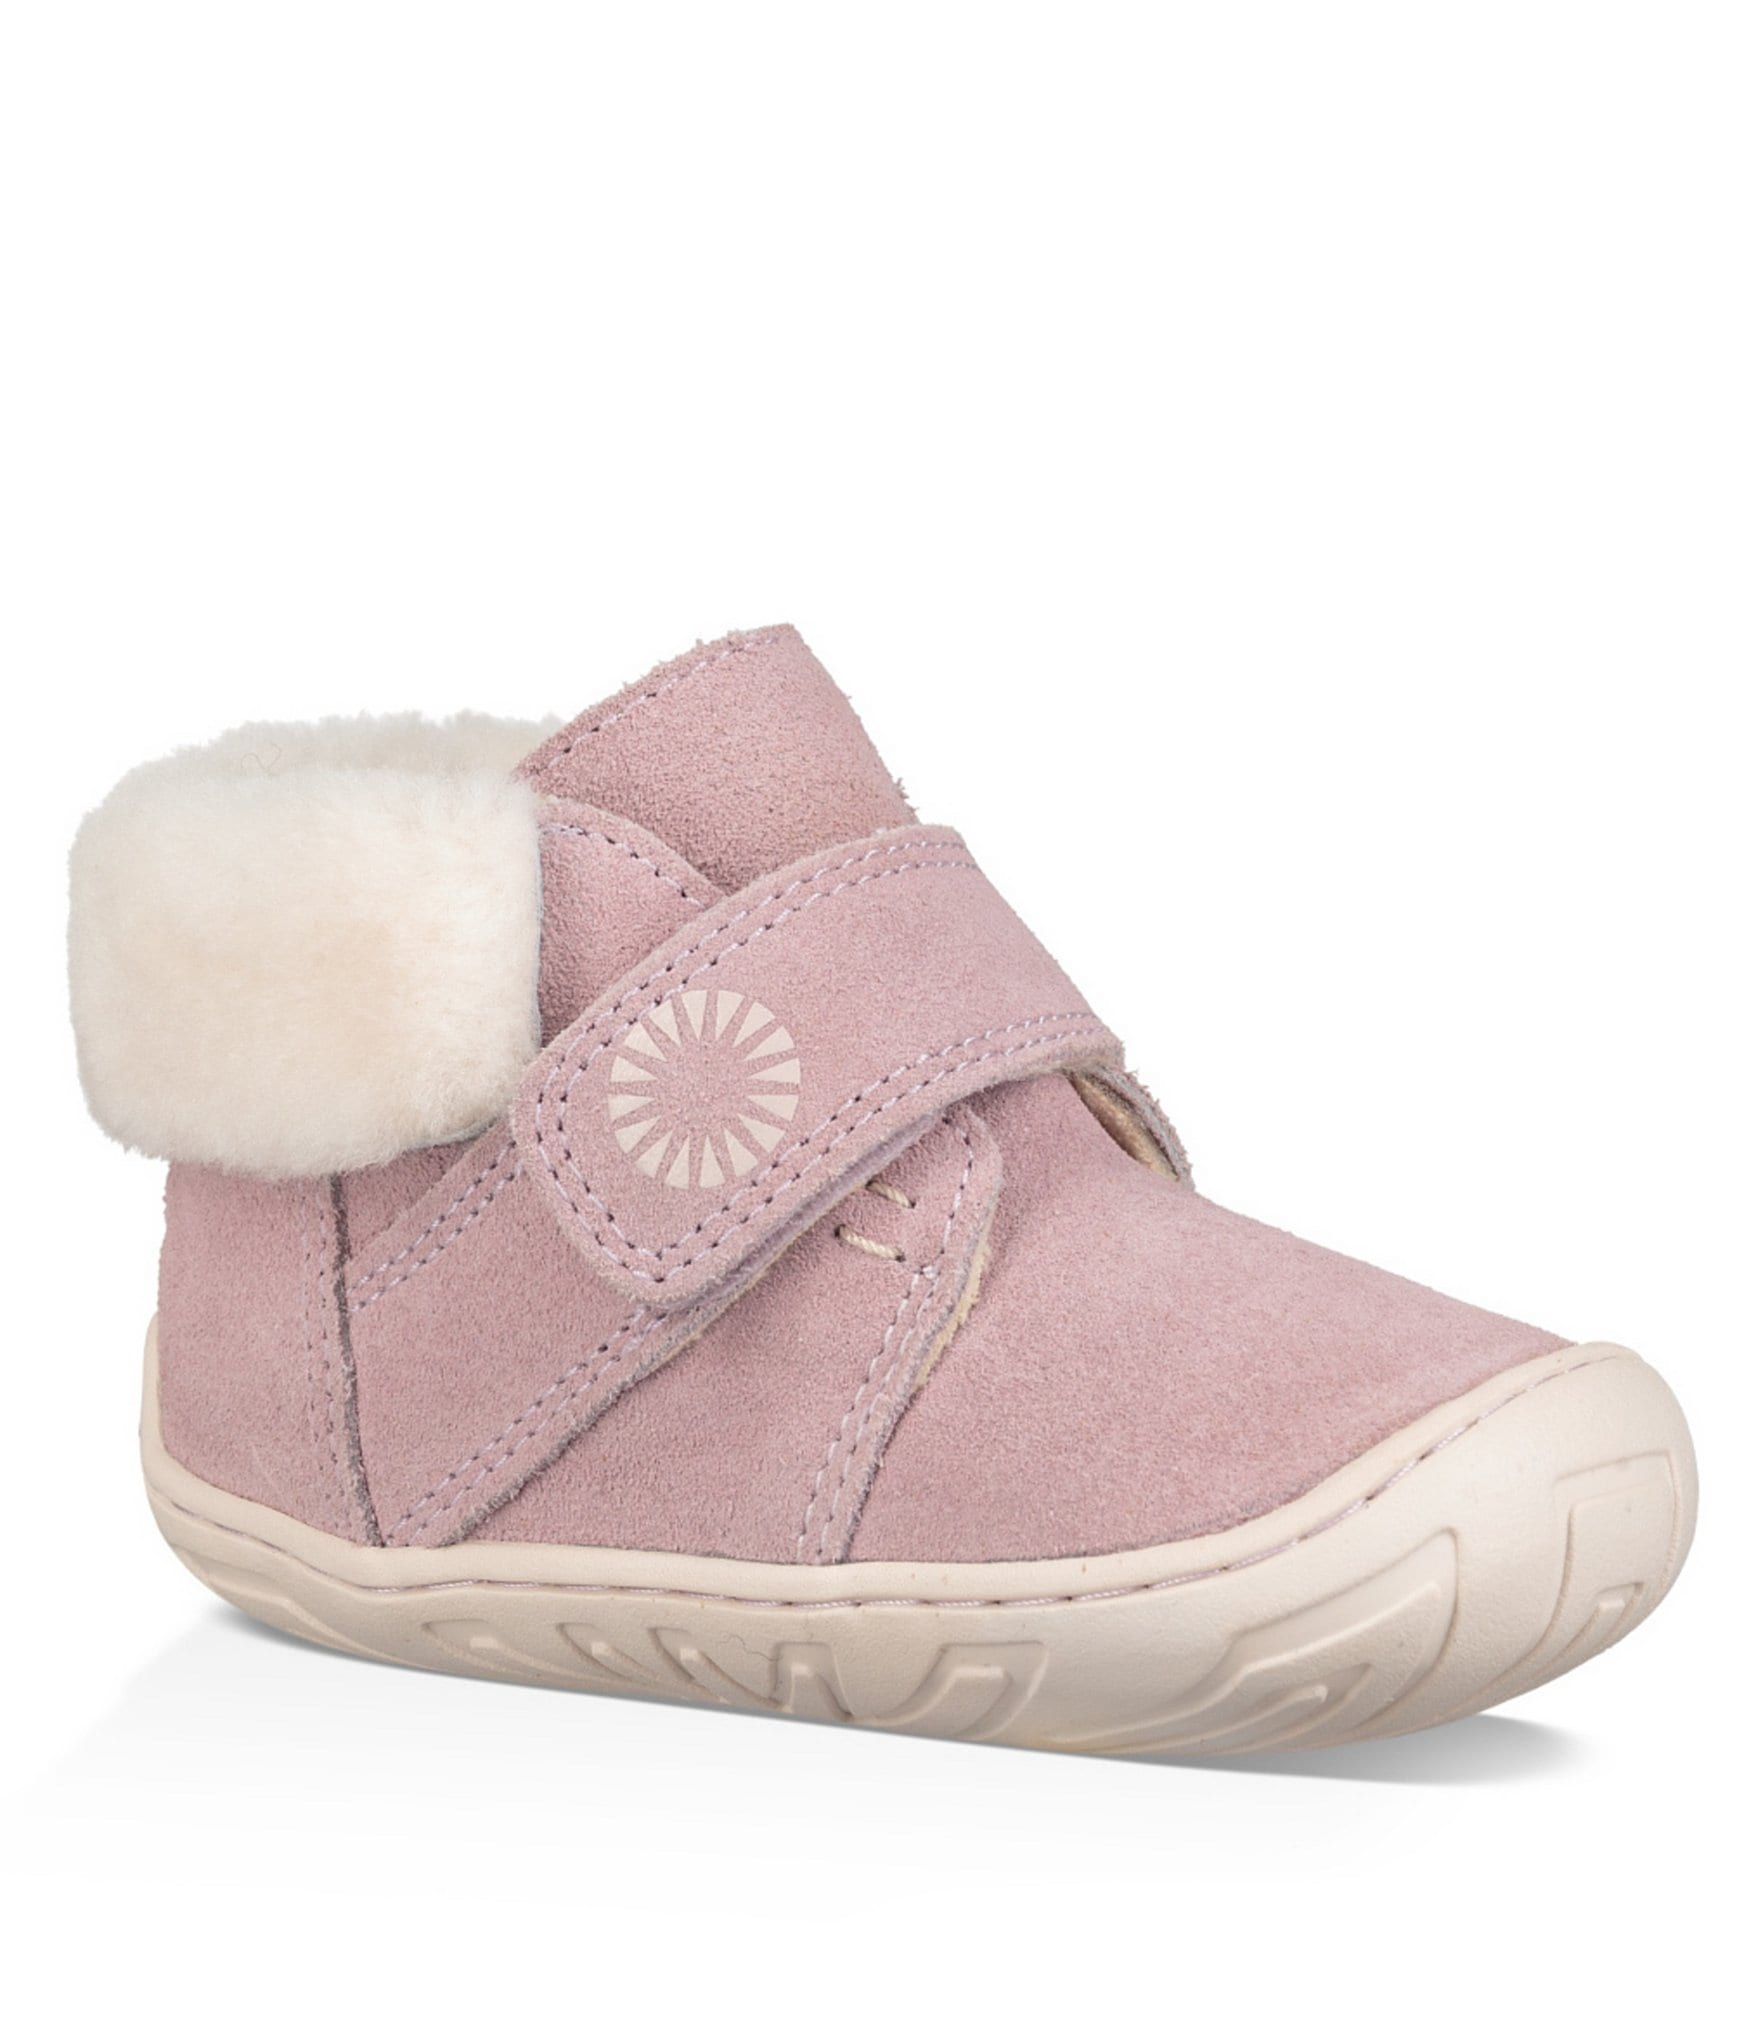 UGG Girls Jorgen Crib Shoes